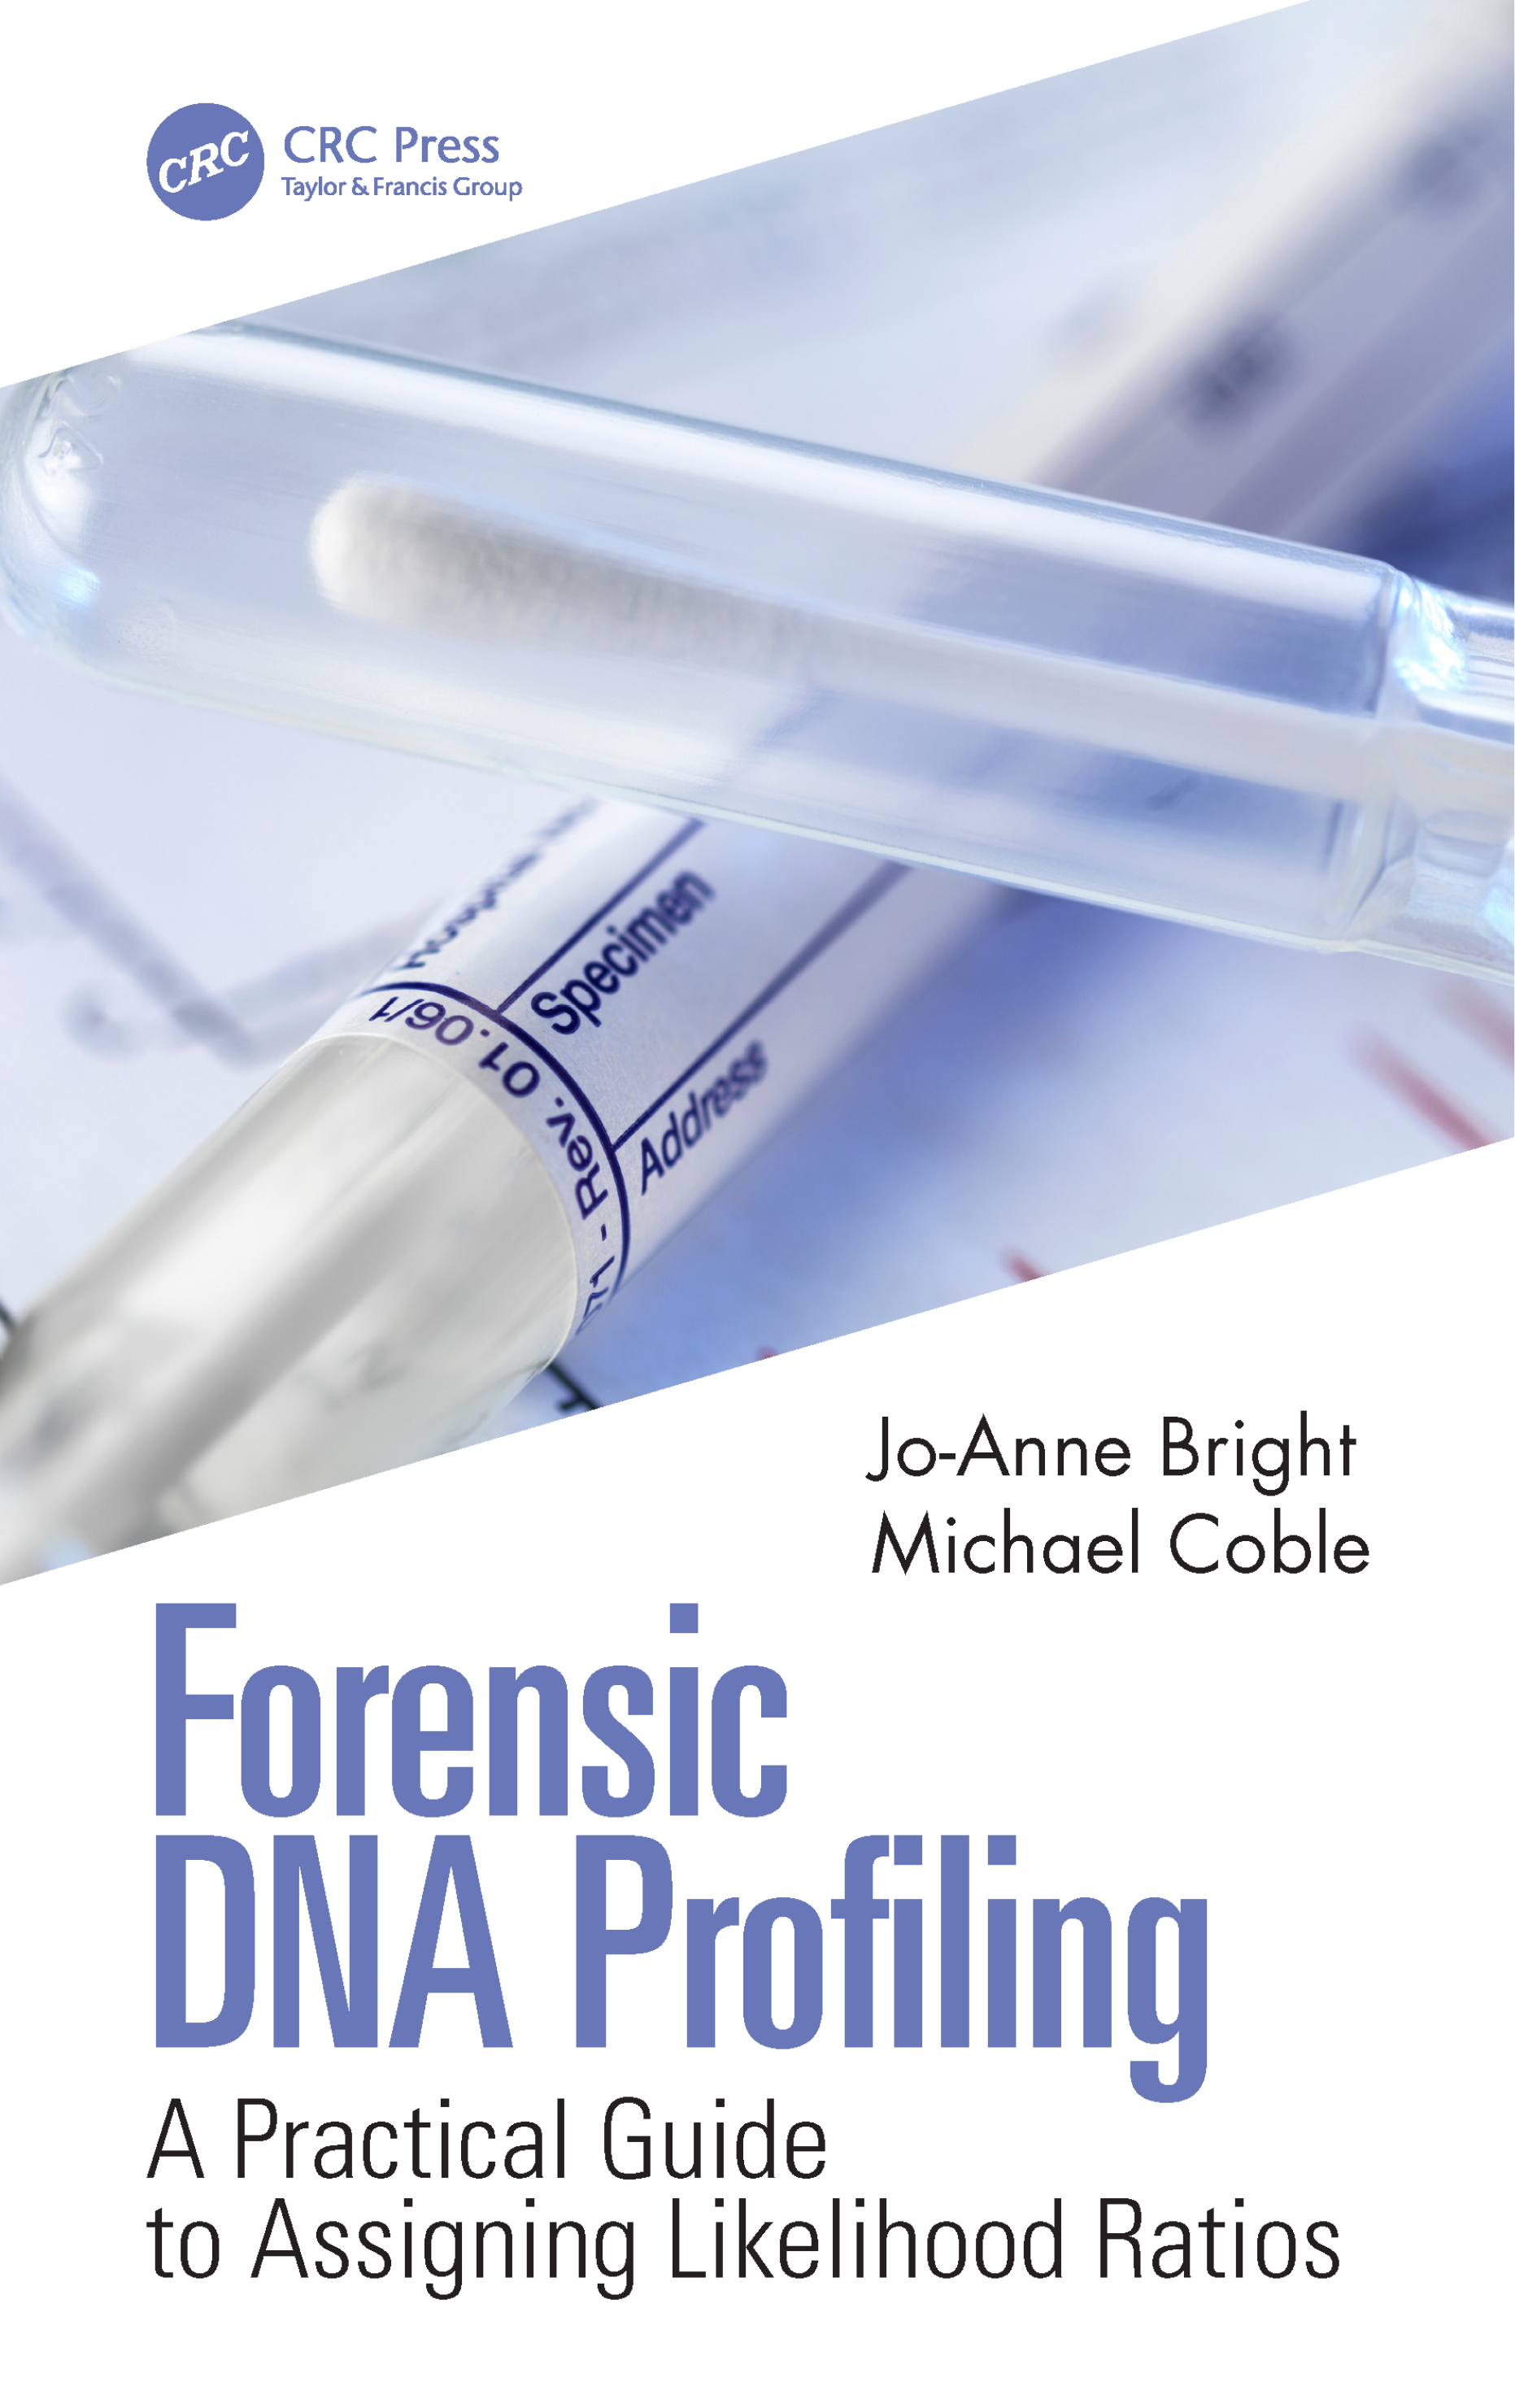 Forensic DNA Profiling: A Practical Guide to Assigning Likelihood Ratios book cover